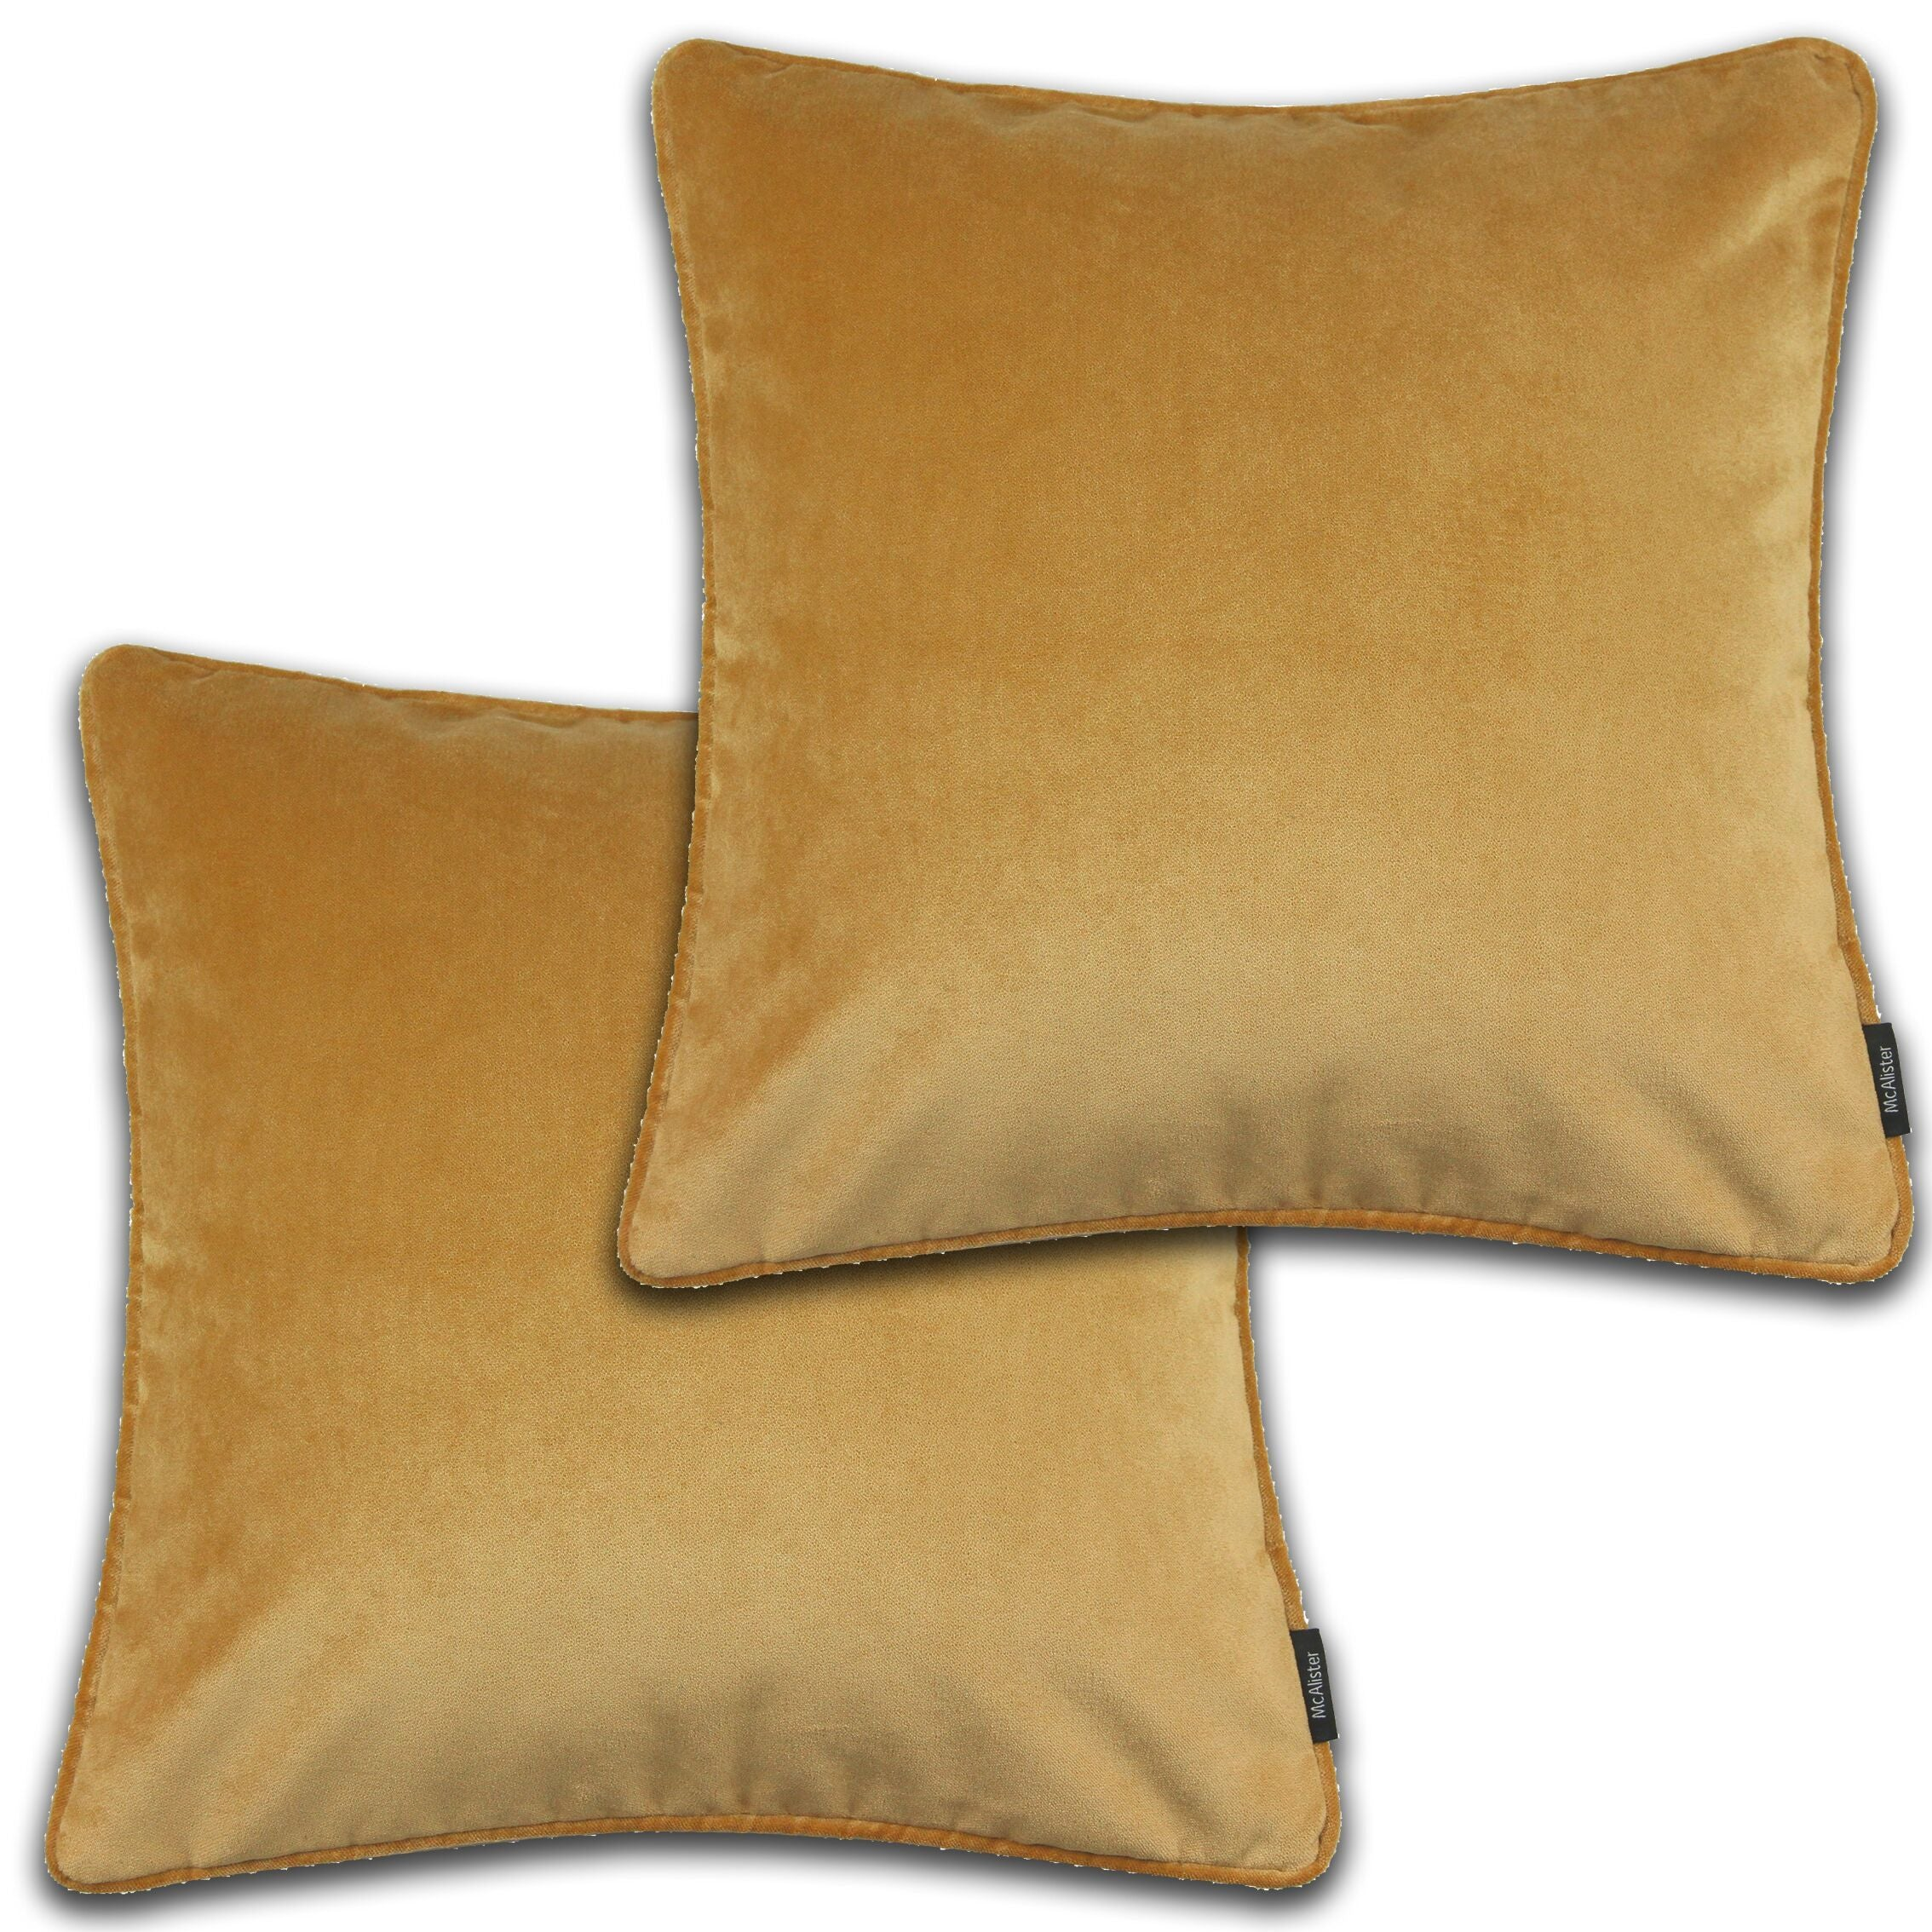 McAlister Textiles Matt Ochre Yellow Velvet 43cm x 43cm Cushion Sets Cushions and Covers Cushion Covers Set of 2